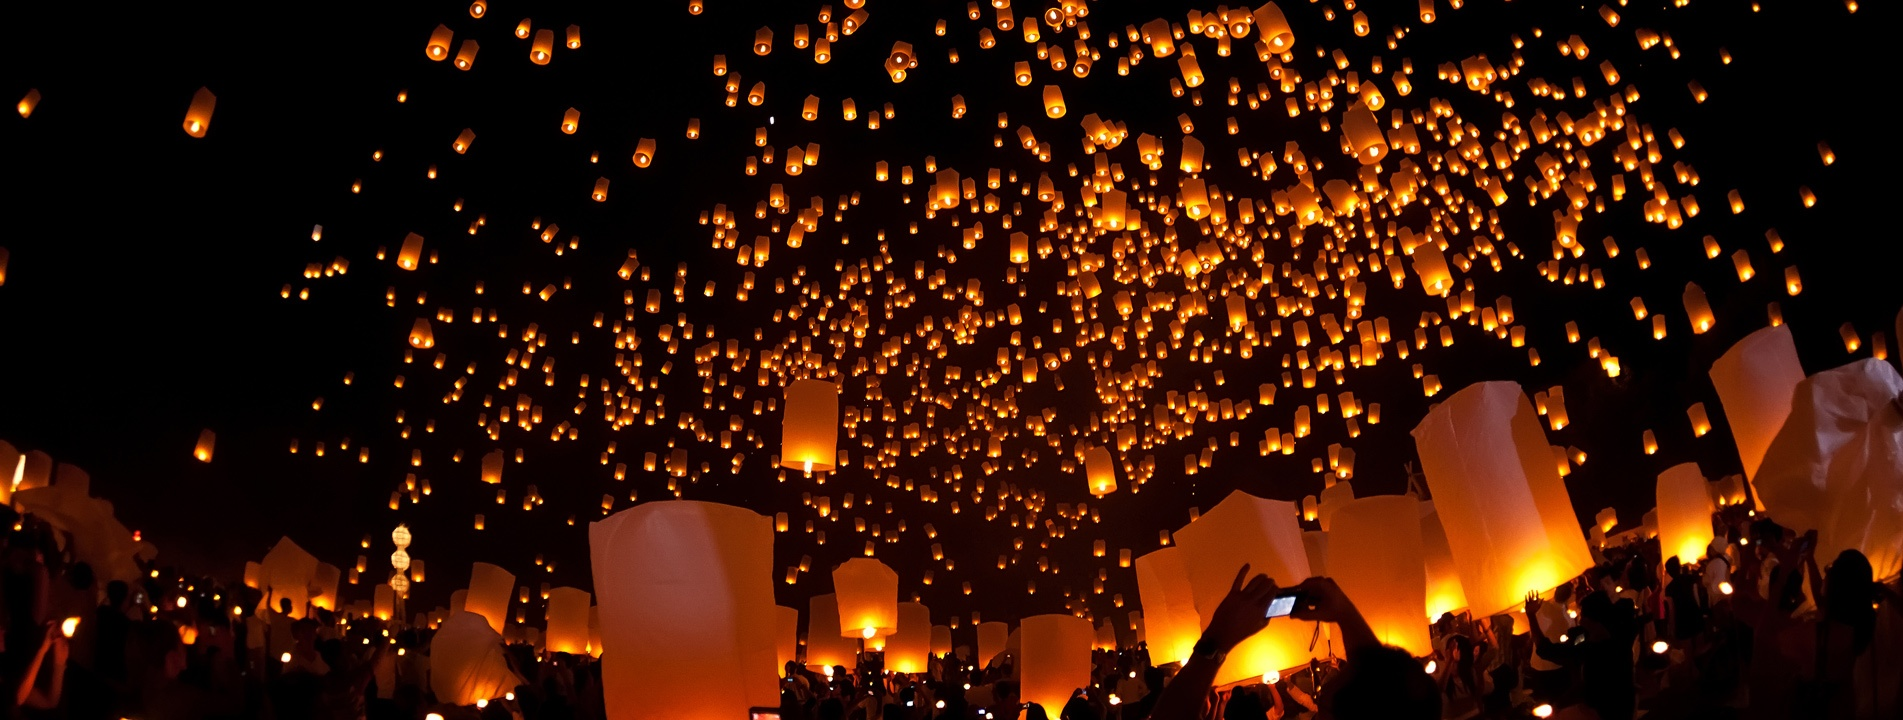 5-day Highlights of Yi Peng Festival in Chiang Mai